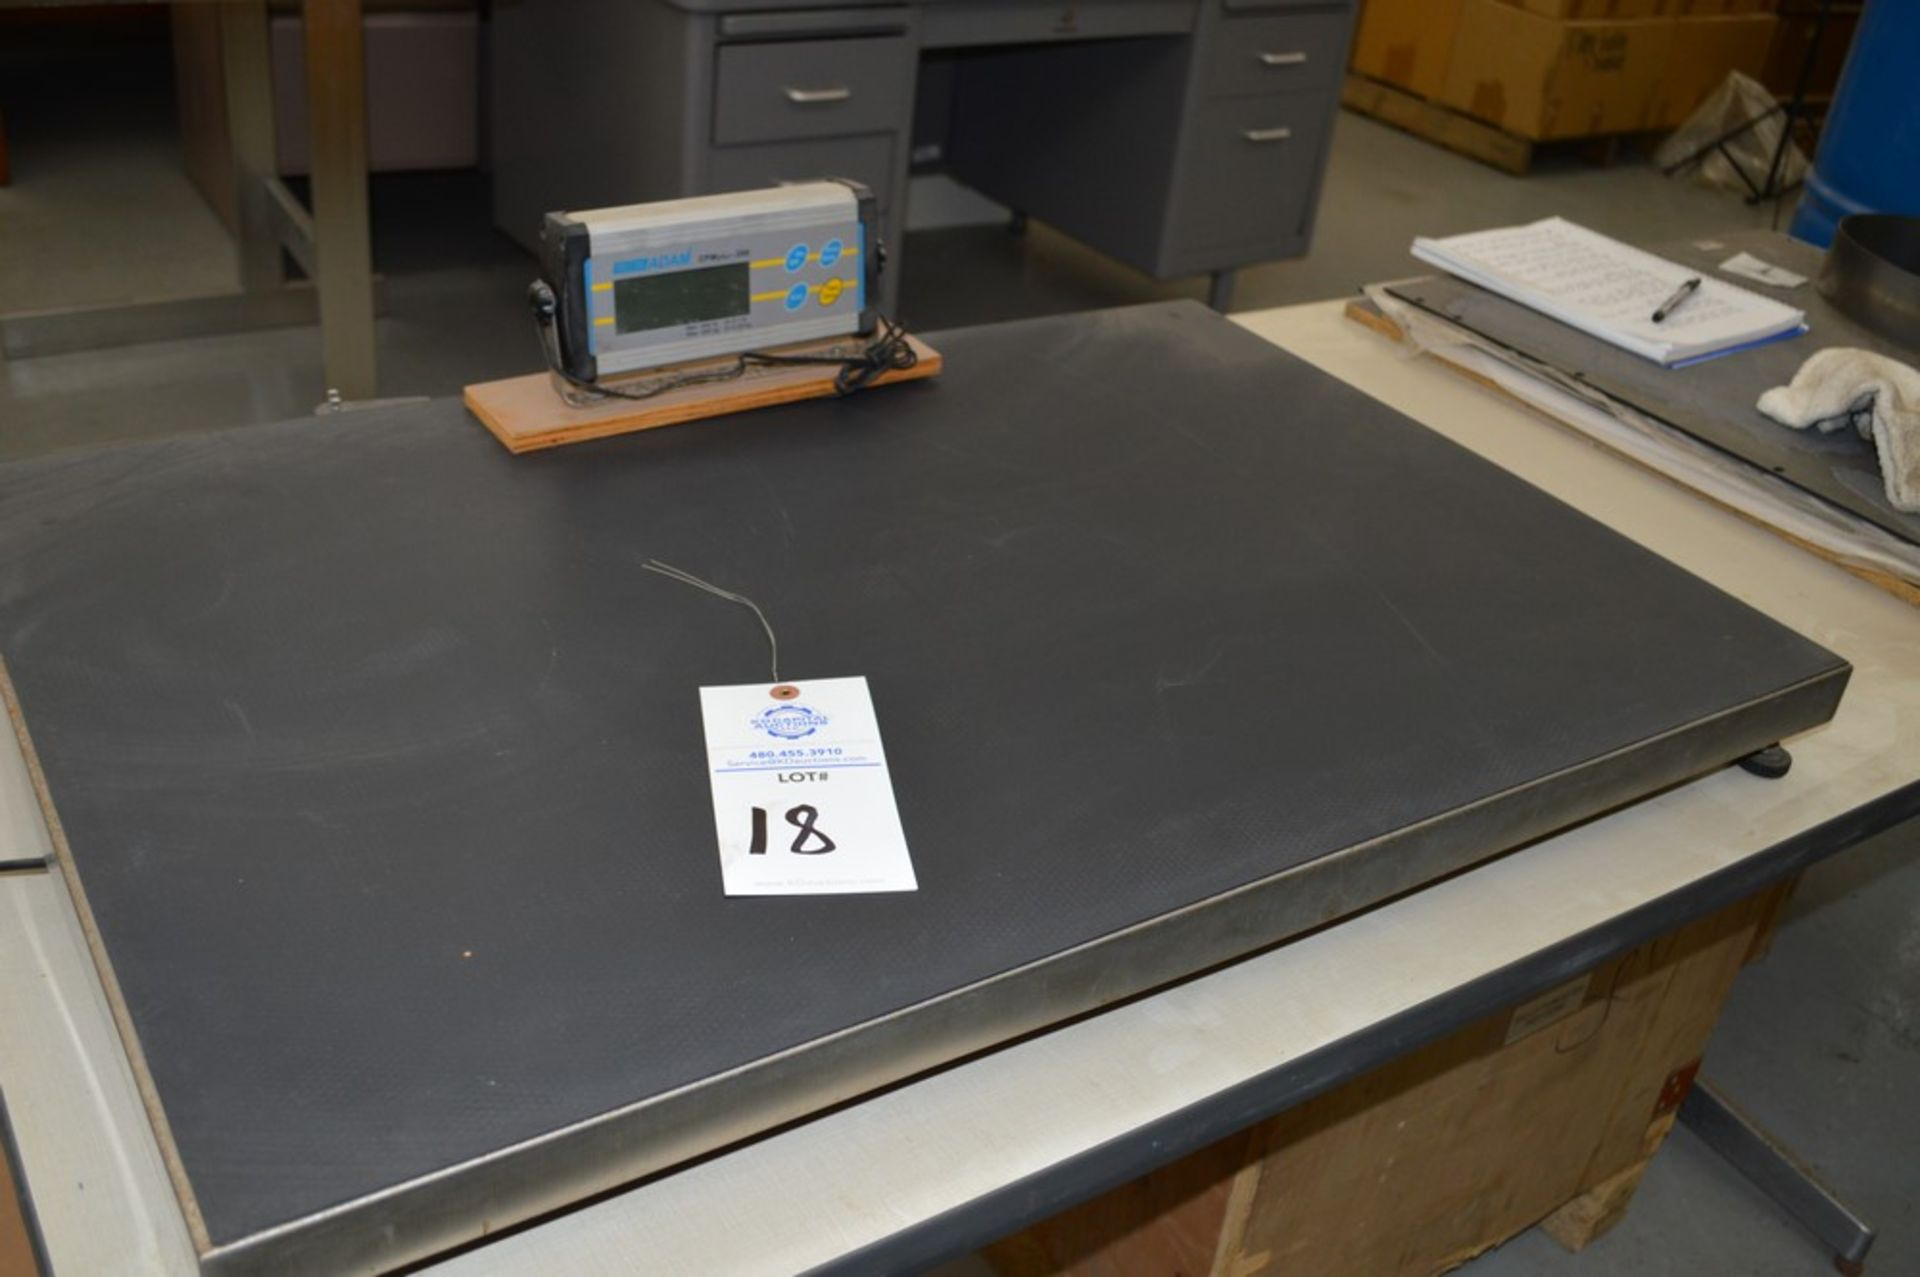 35 1/4 x 23 1/4 440 lb scale with digital read out, Adam equipment 2001 control